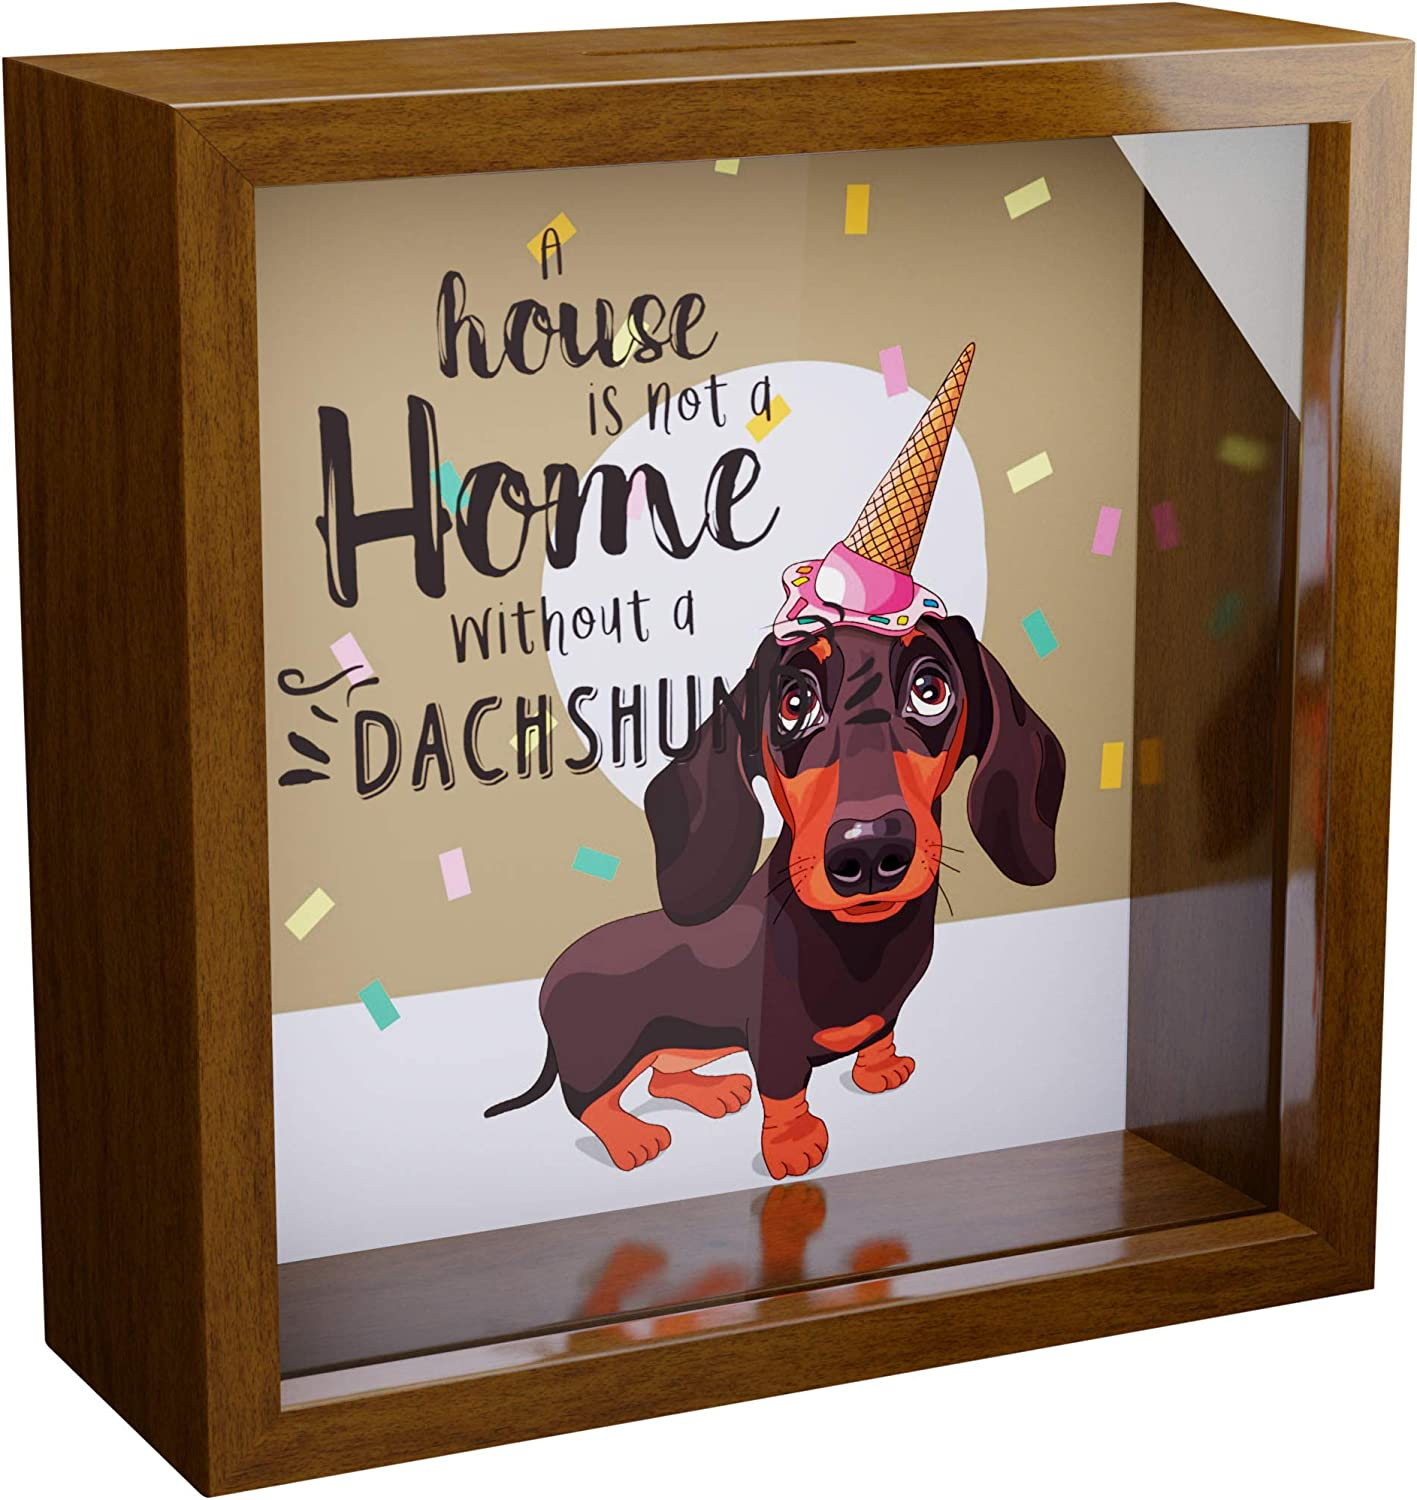 Dachshund Wall Decor Gifts | 6x6x2 Memorabilia Shadow Box | Wiener Dog Keepsake Frame with Glass Front | Dachshunds Themed Decorations for Home | Wooden Gift for Wiener Dogs Lovers